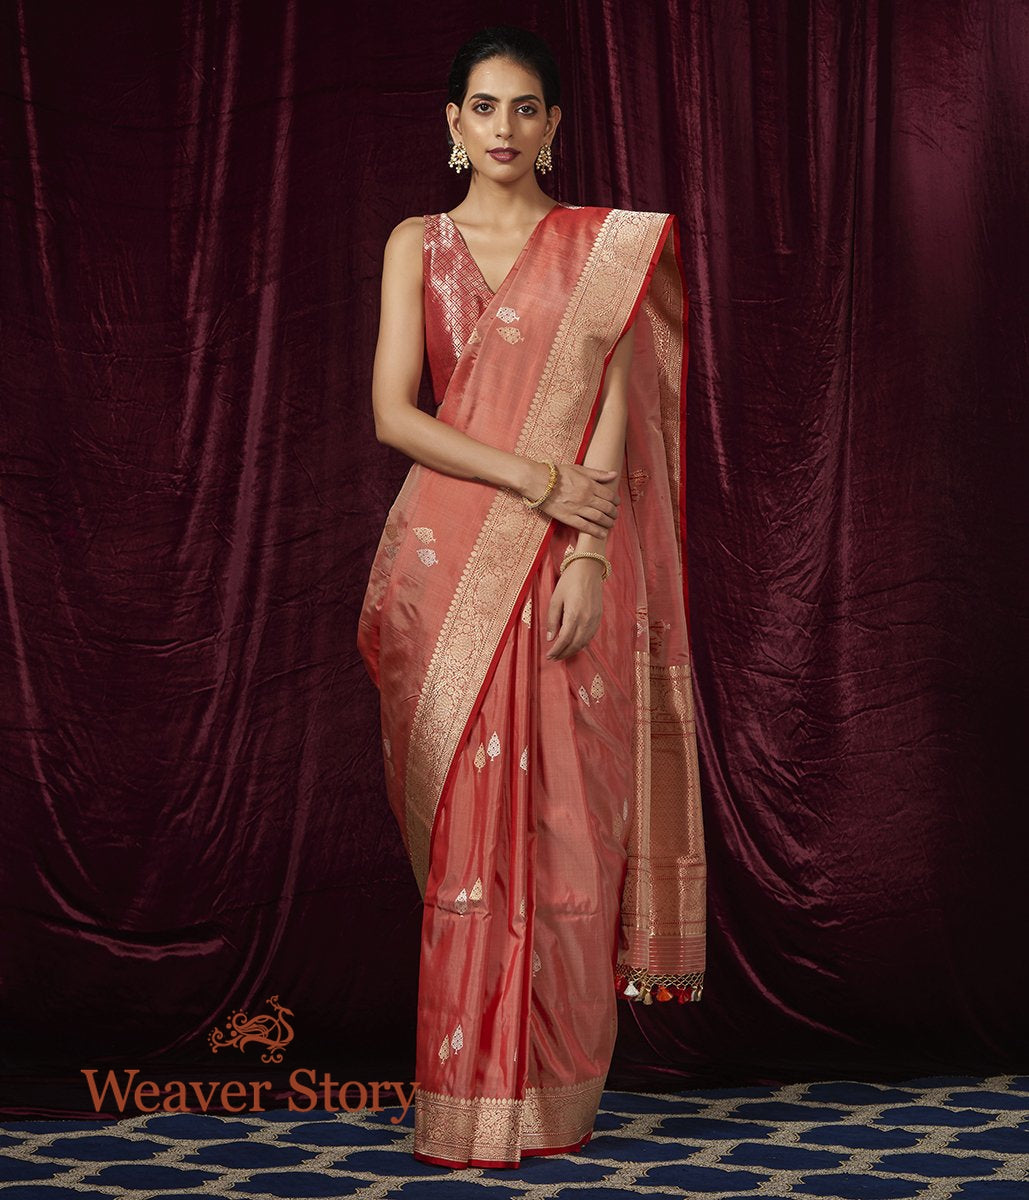 Handwoven Beige and Red Dual Tone Kadhwa Booti Saree